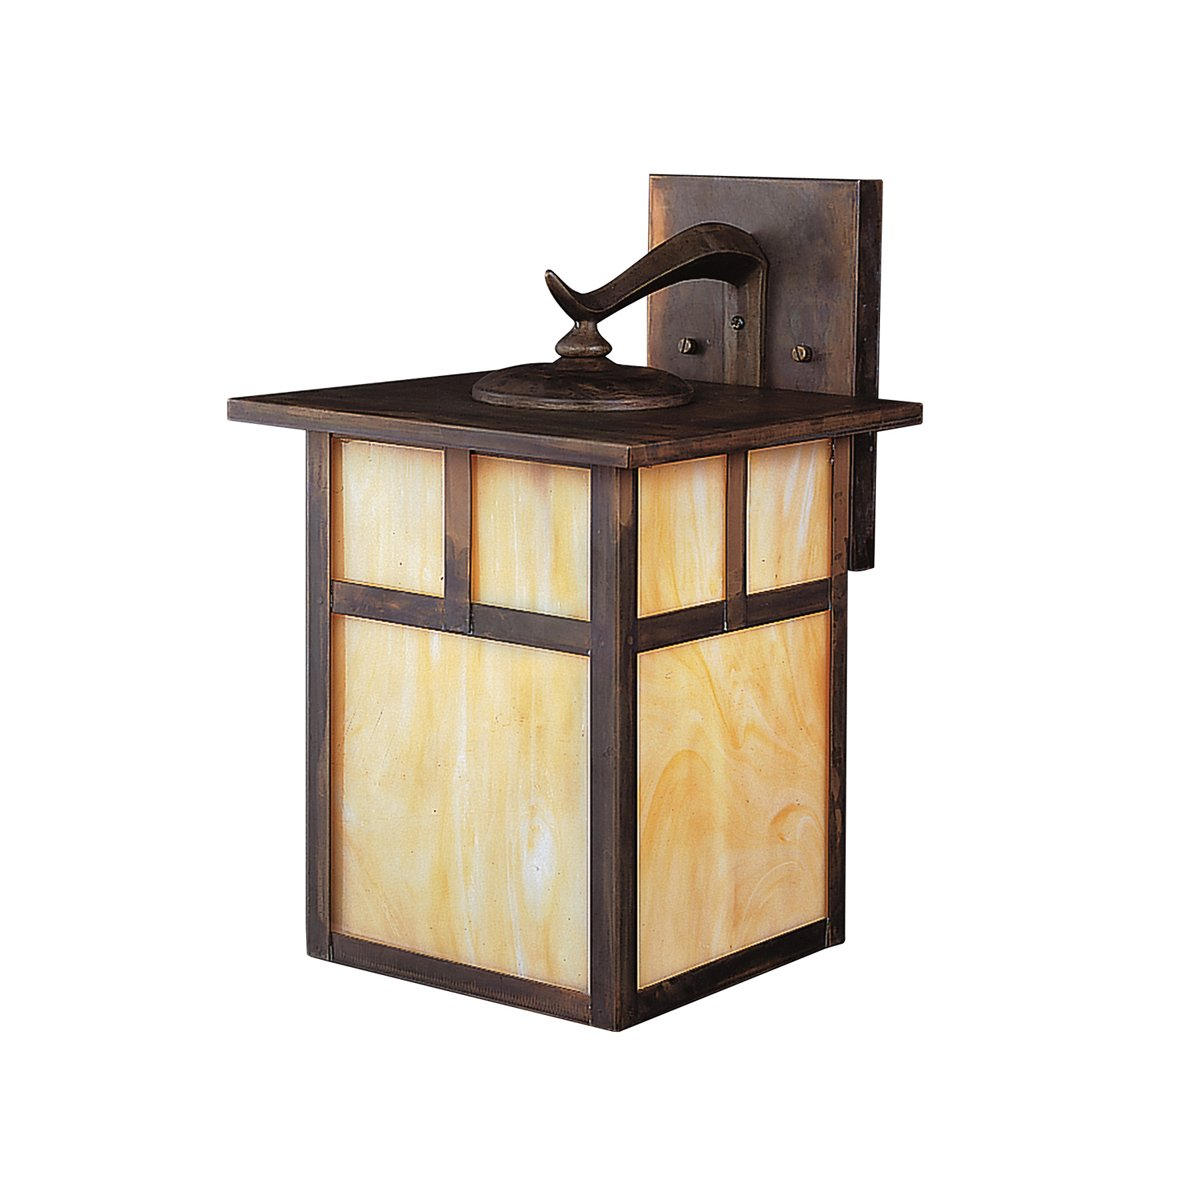 Kichler 9652cv alameda outdoor wall 1 light canyon view wall kichler 9652cv alameda outdoor wall 1 light canyon view wall porch lights amazon aloadofball